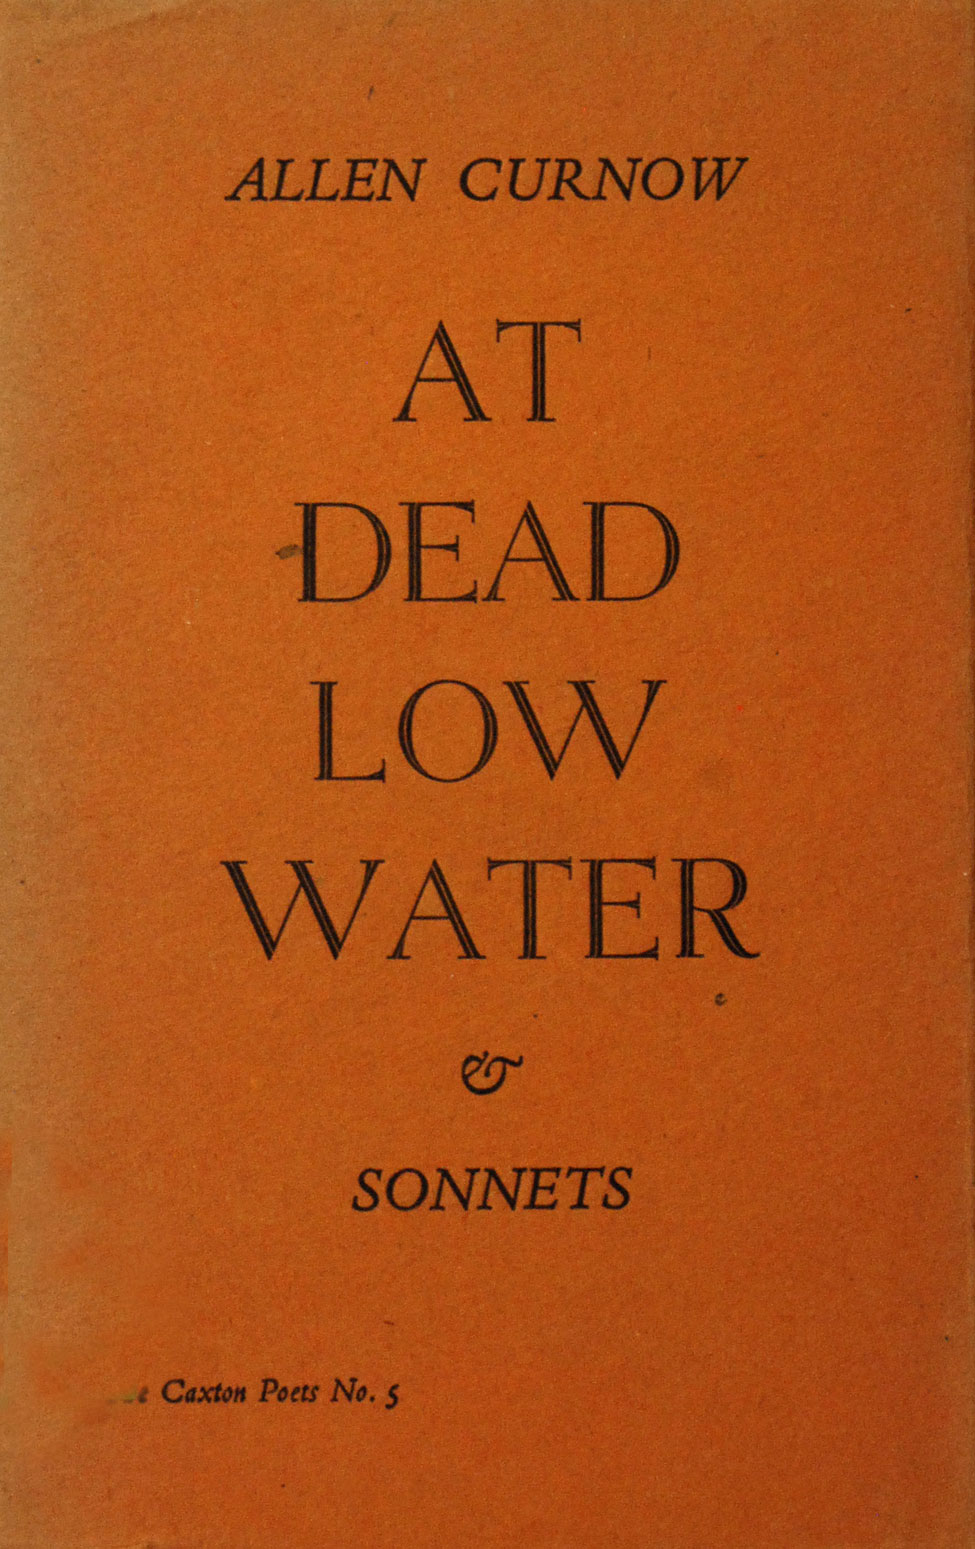 Allen Curnow. At Dead Low Water and Sonnets. <i>Christchurch: The Caxton Press, 1949; no. 5 in The Caxton Poets series.</i>